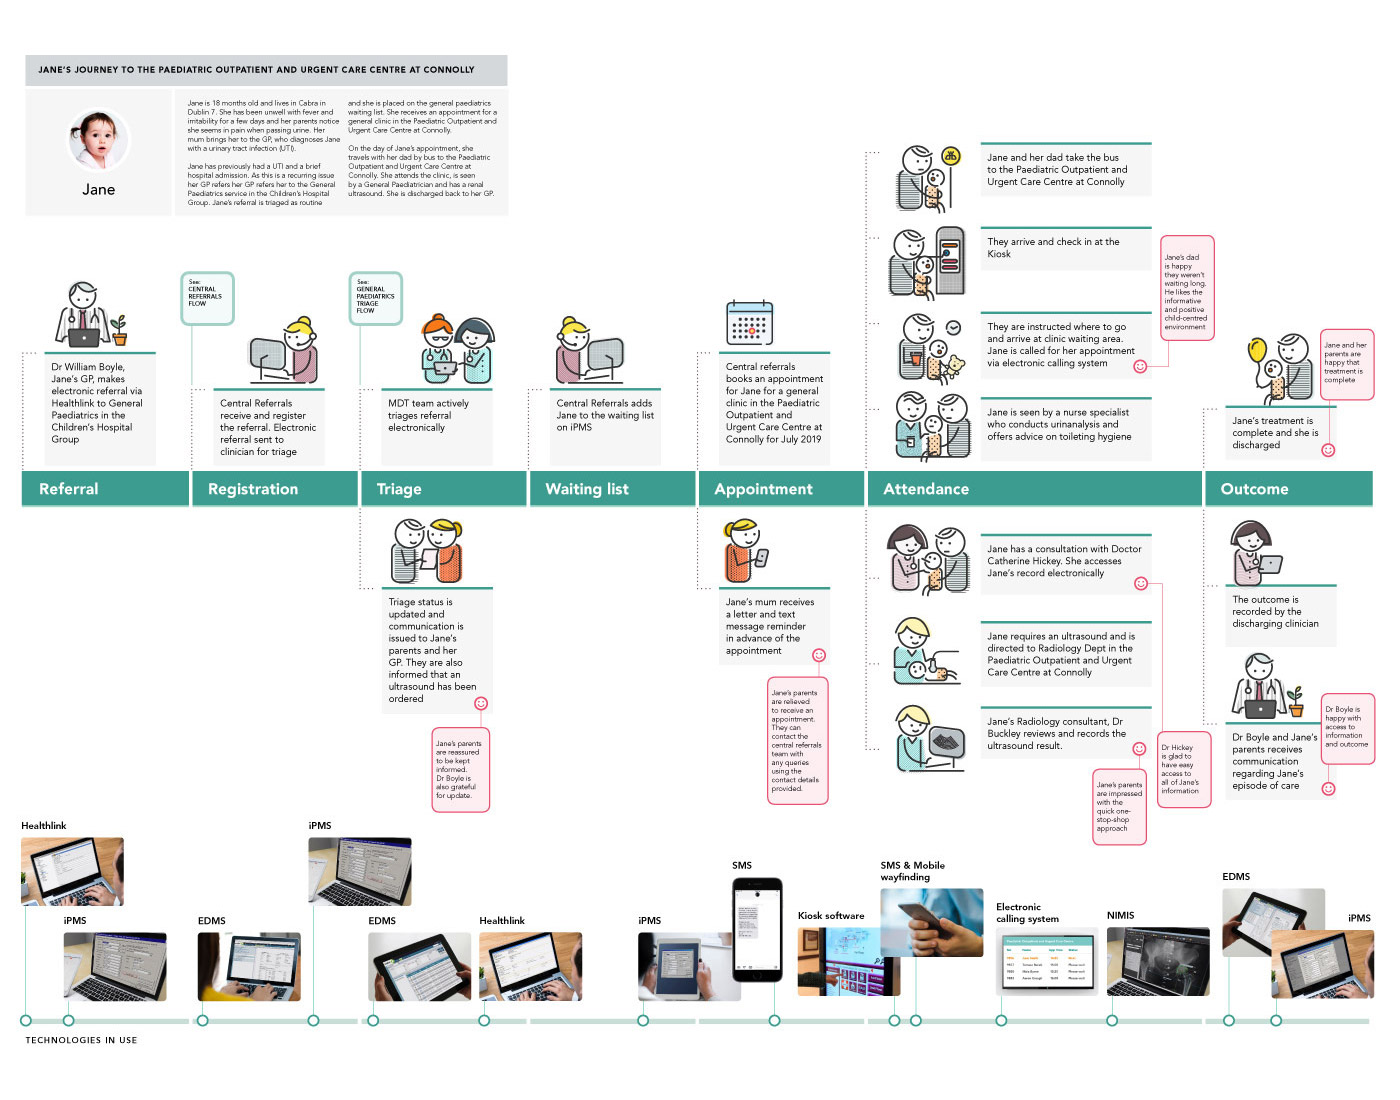 National Children's Hospital, User Journey Flow